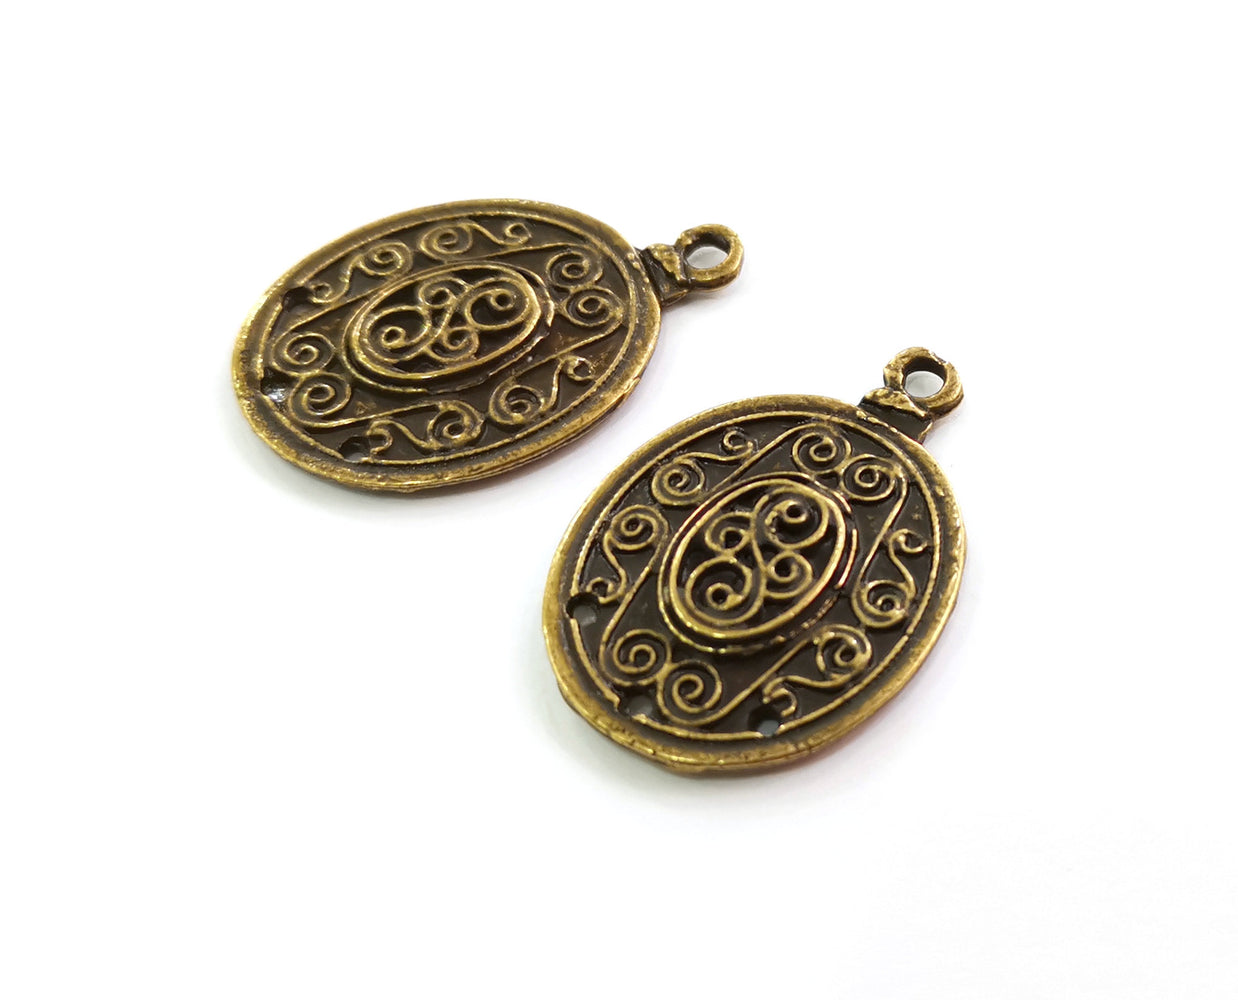 2 Antique Bronze Charms Connector Antique Bronze Plated Charms (37x25mm)  G18644